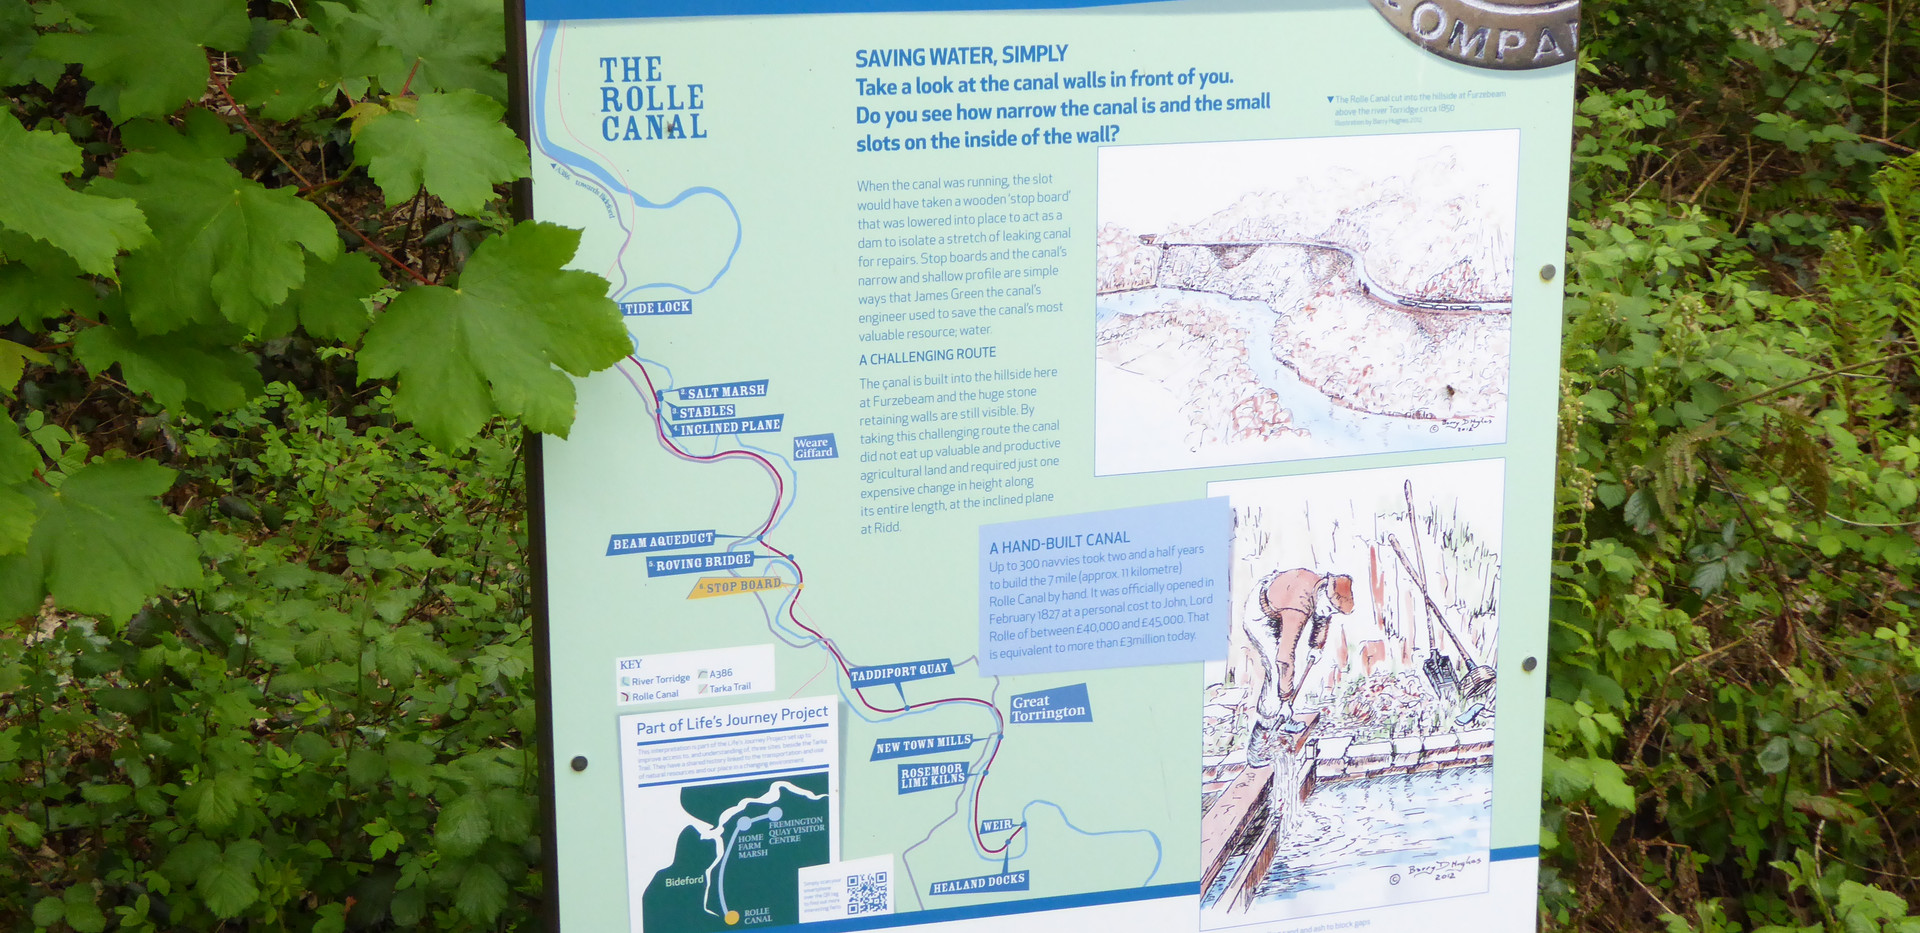 The old canal info